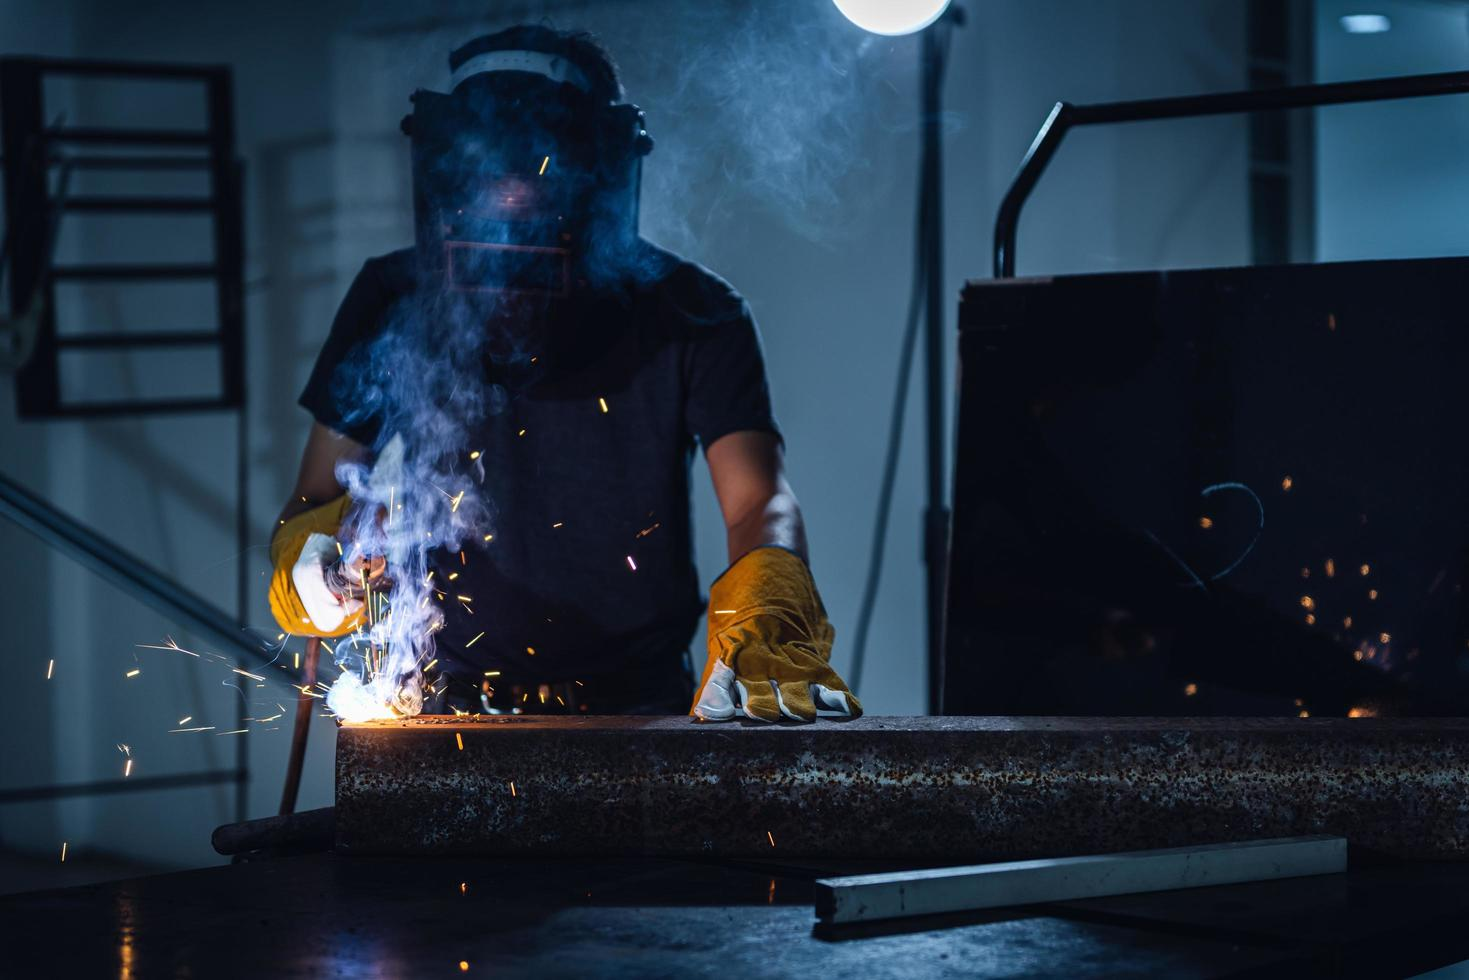 Man with mask welding photo